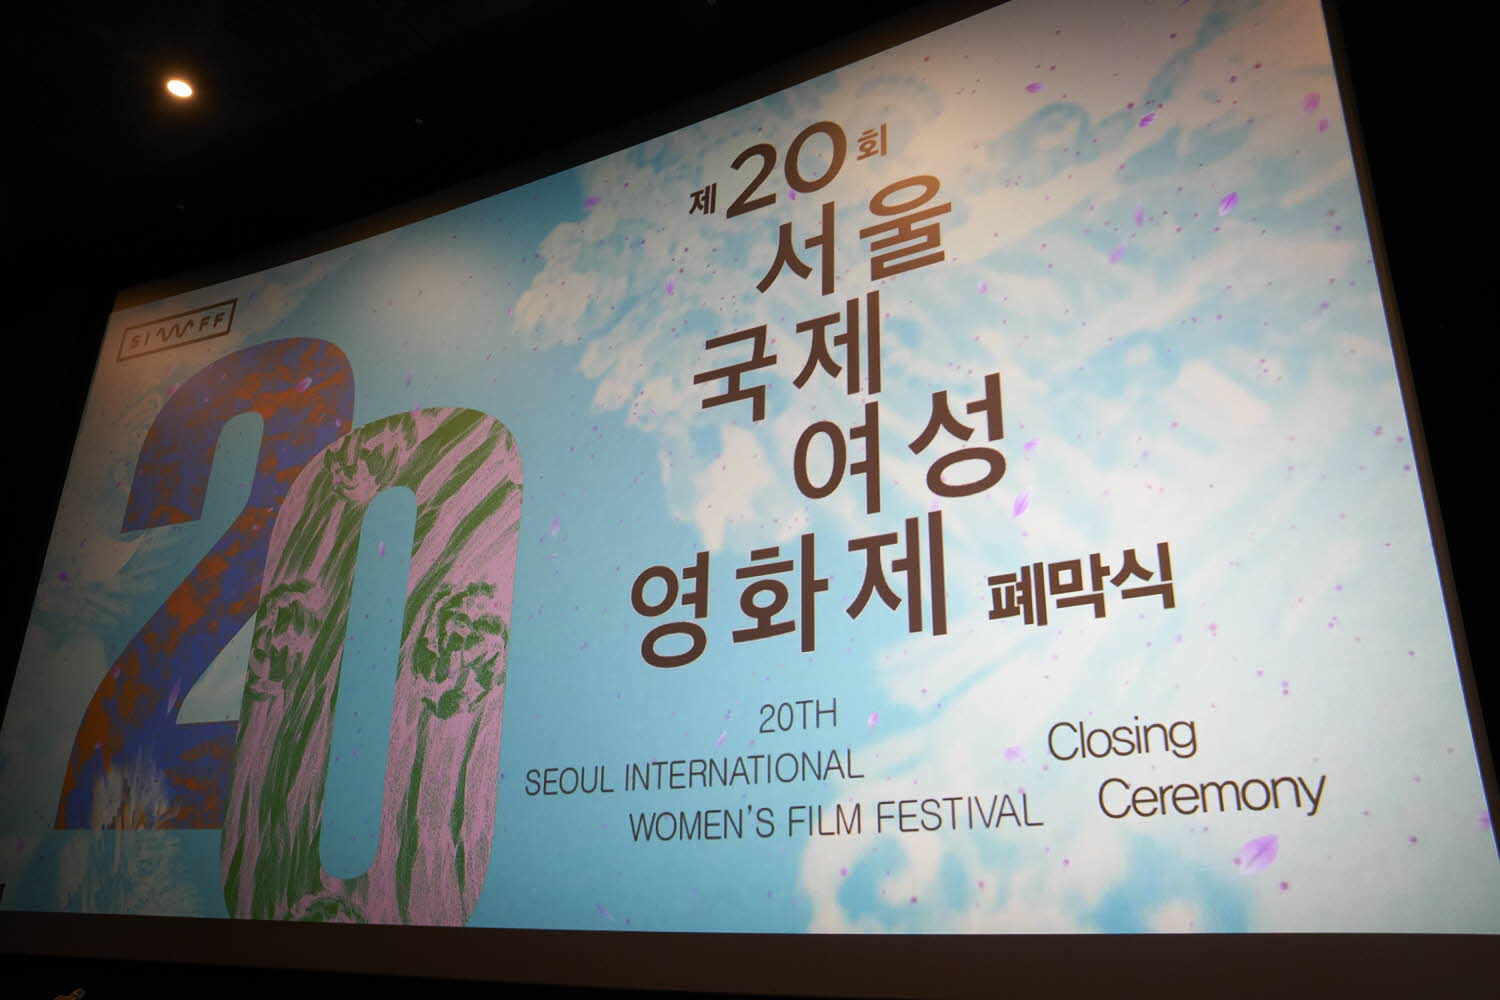 20th SIWFF Closing Ceremony